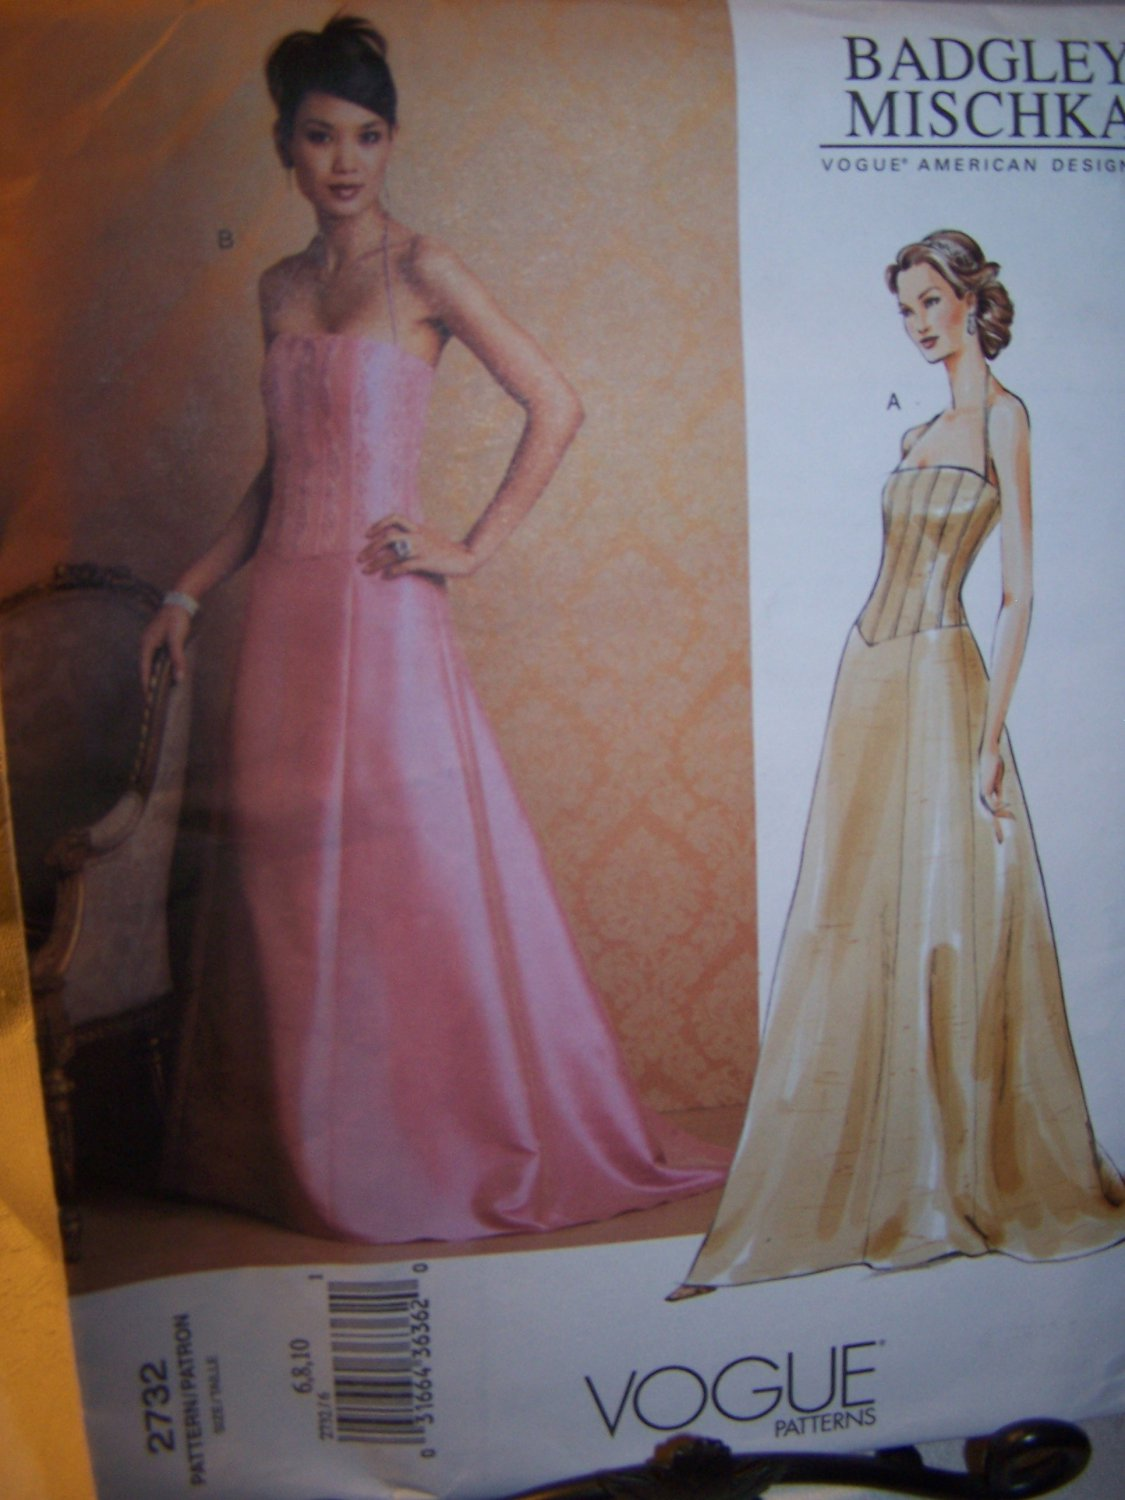 Vogue 2732 Designer Sewing Pattern Badgley Evening Gown Sizes 18-22